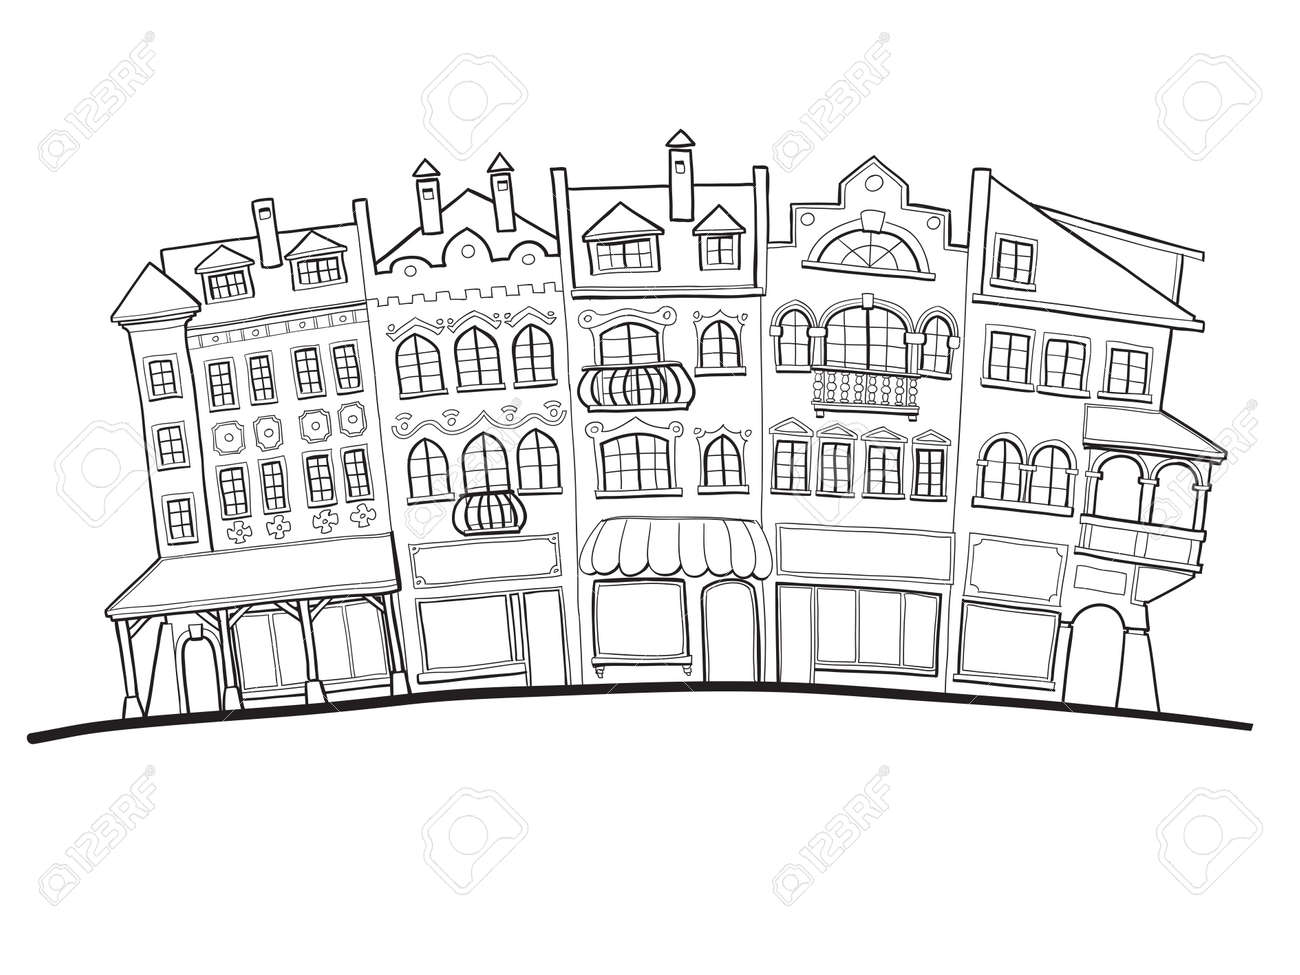 Drawing Of Old City Street Facades Houses And Shops Stock Vector